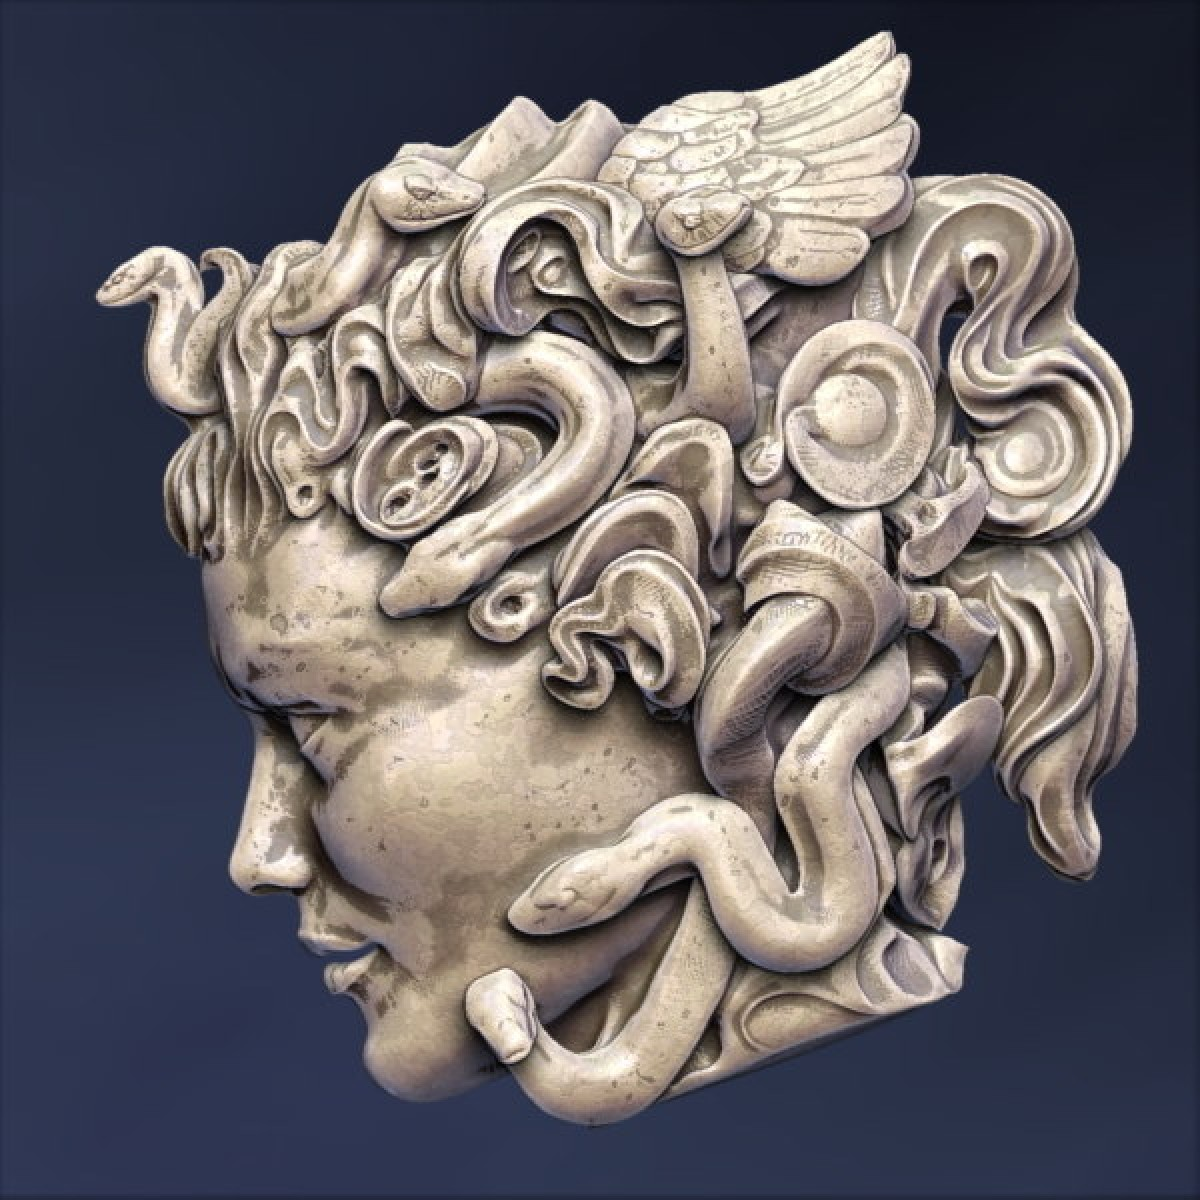 Medusa Head and The Versace Brand